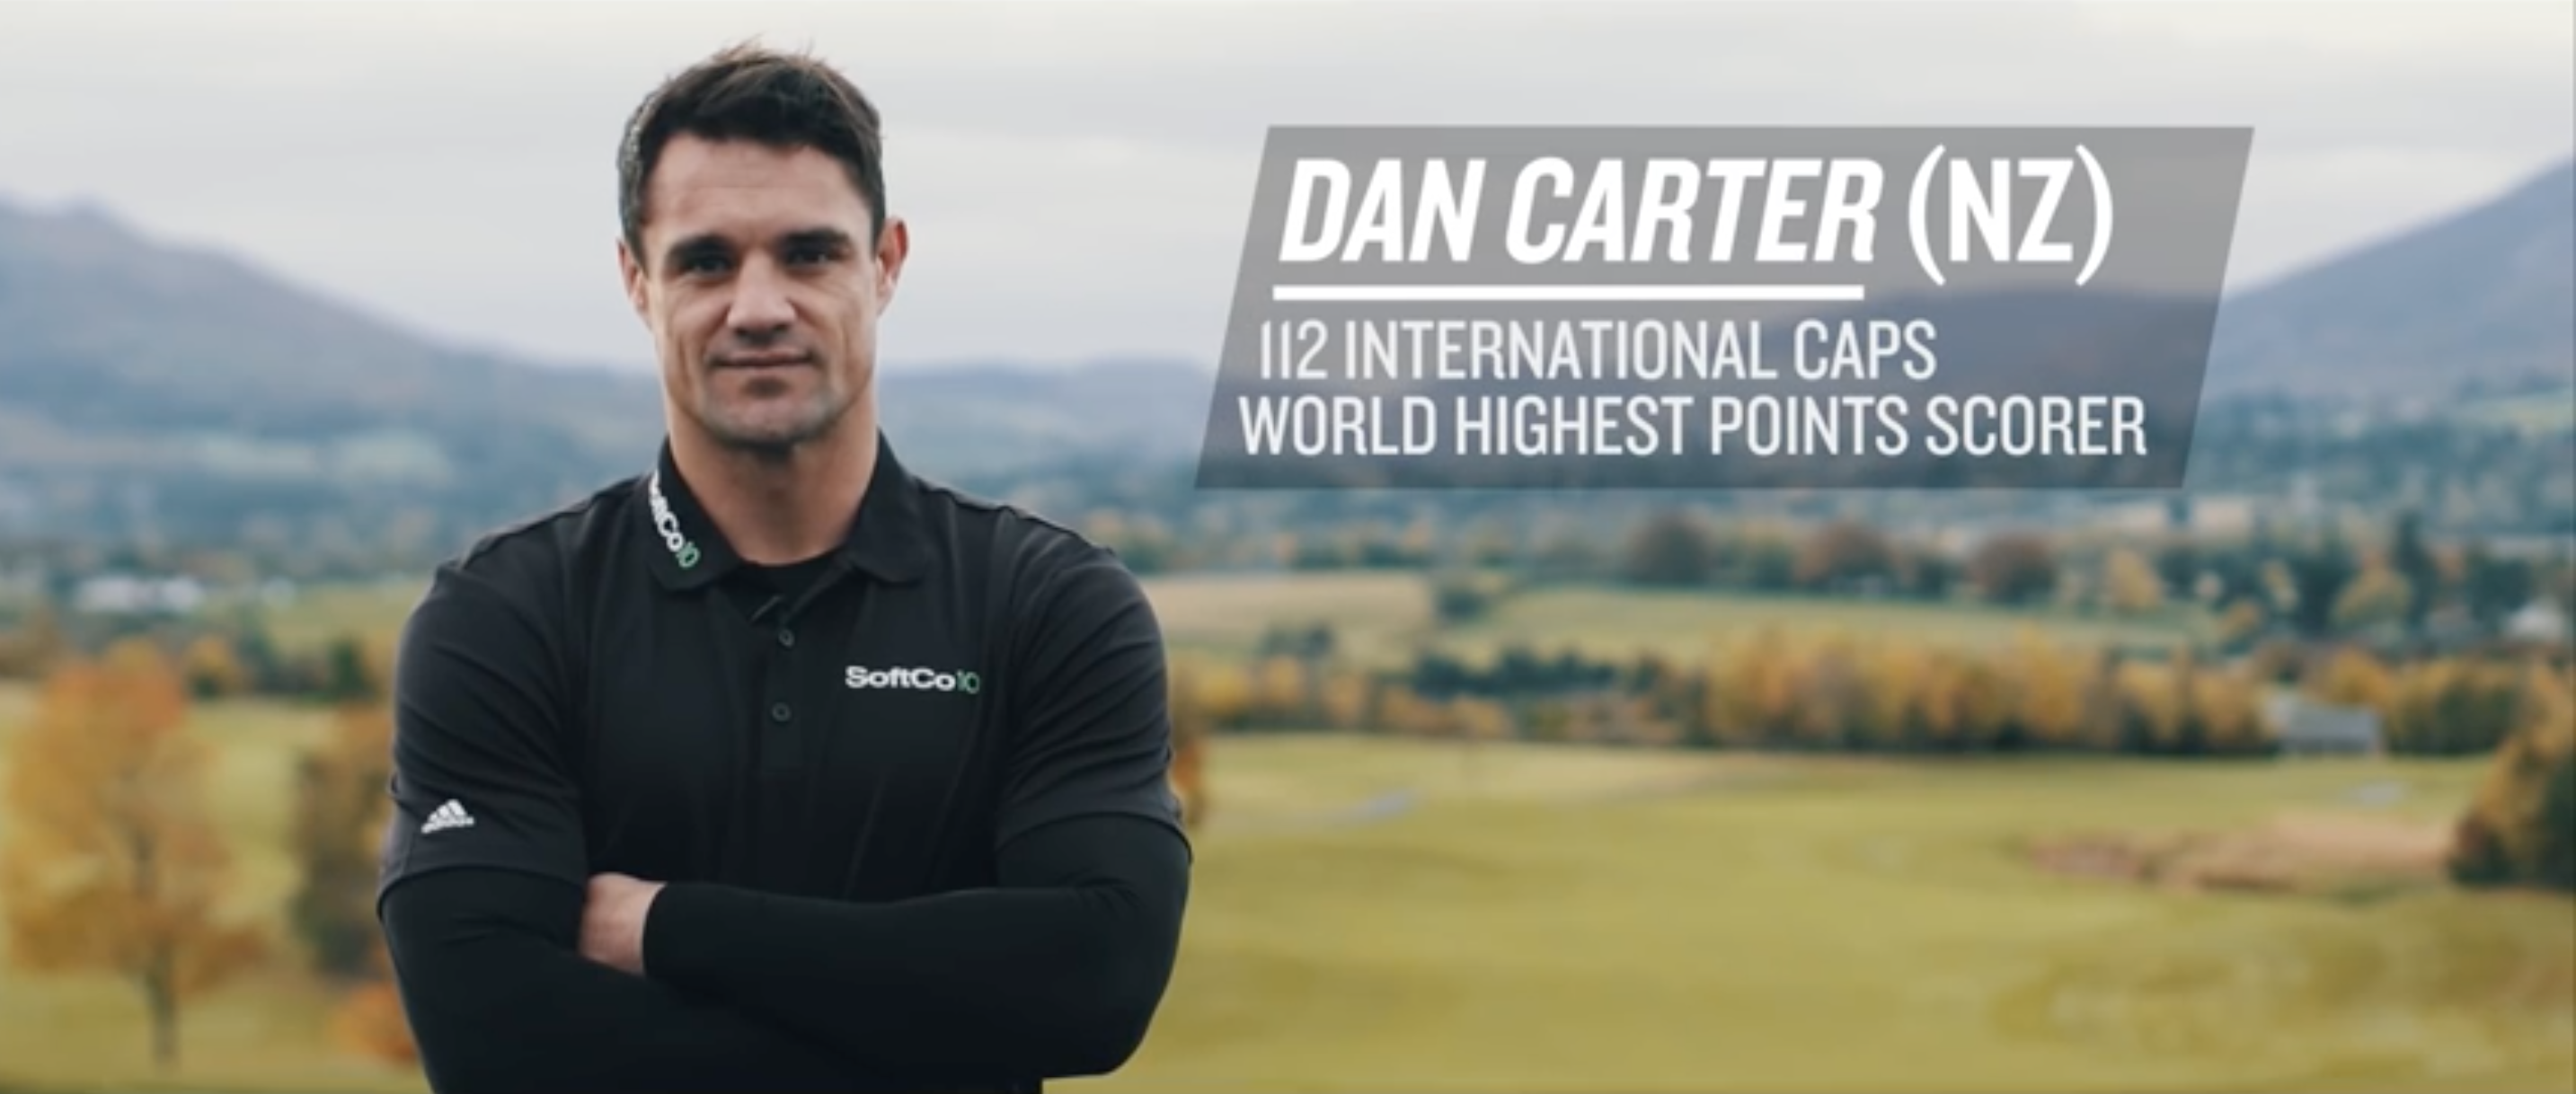 Dan Carter vs ROG - Softco